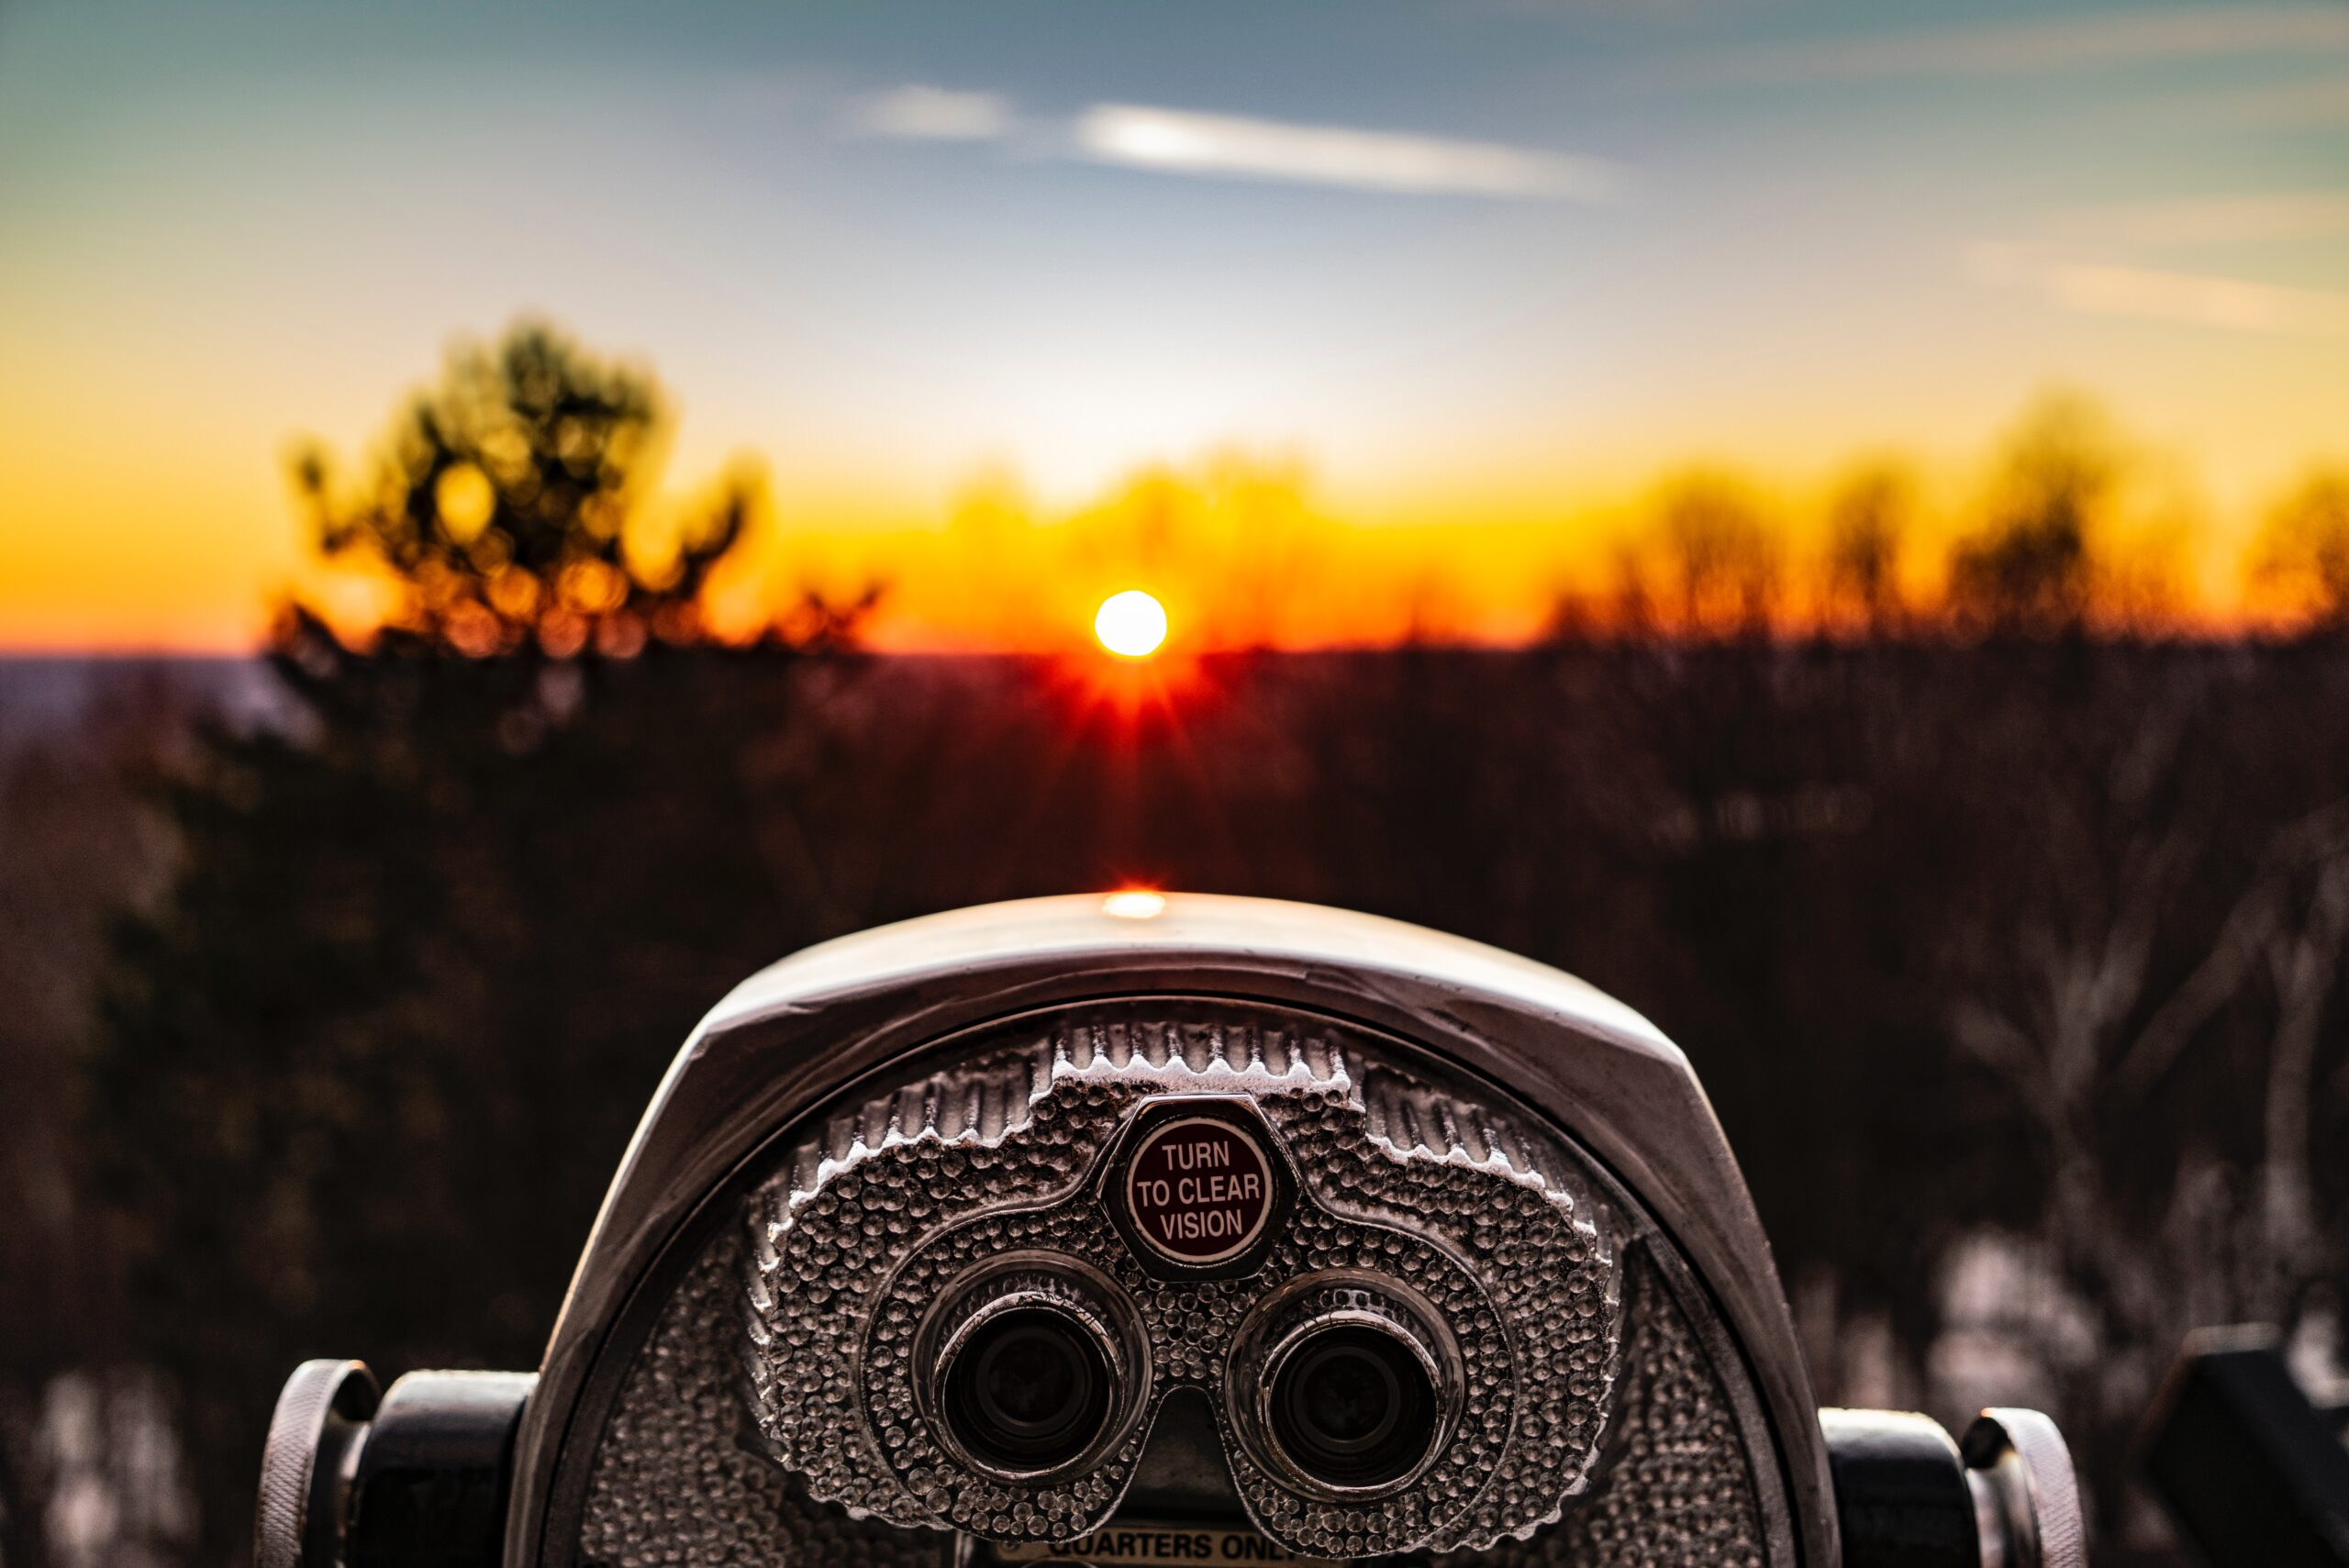 How Do We See God's Vision for Us?